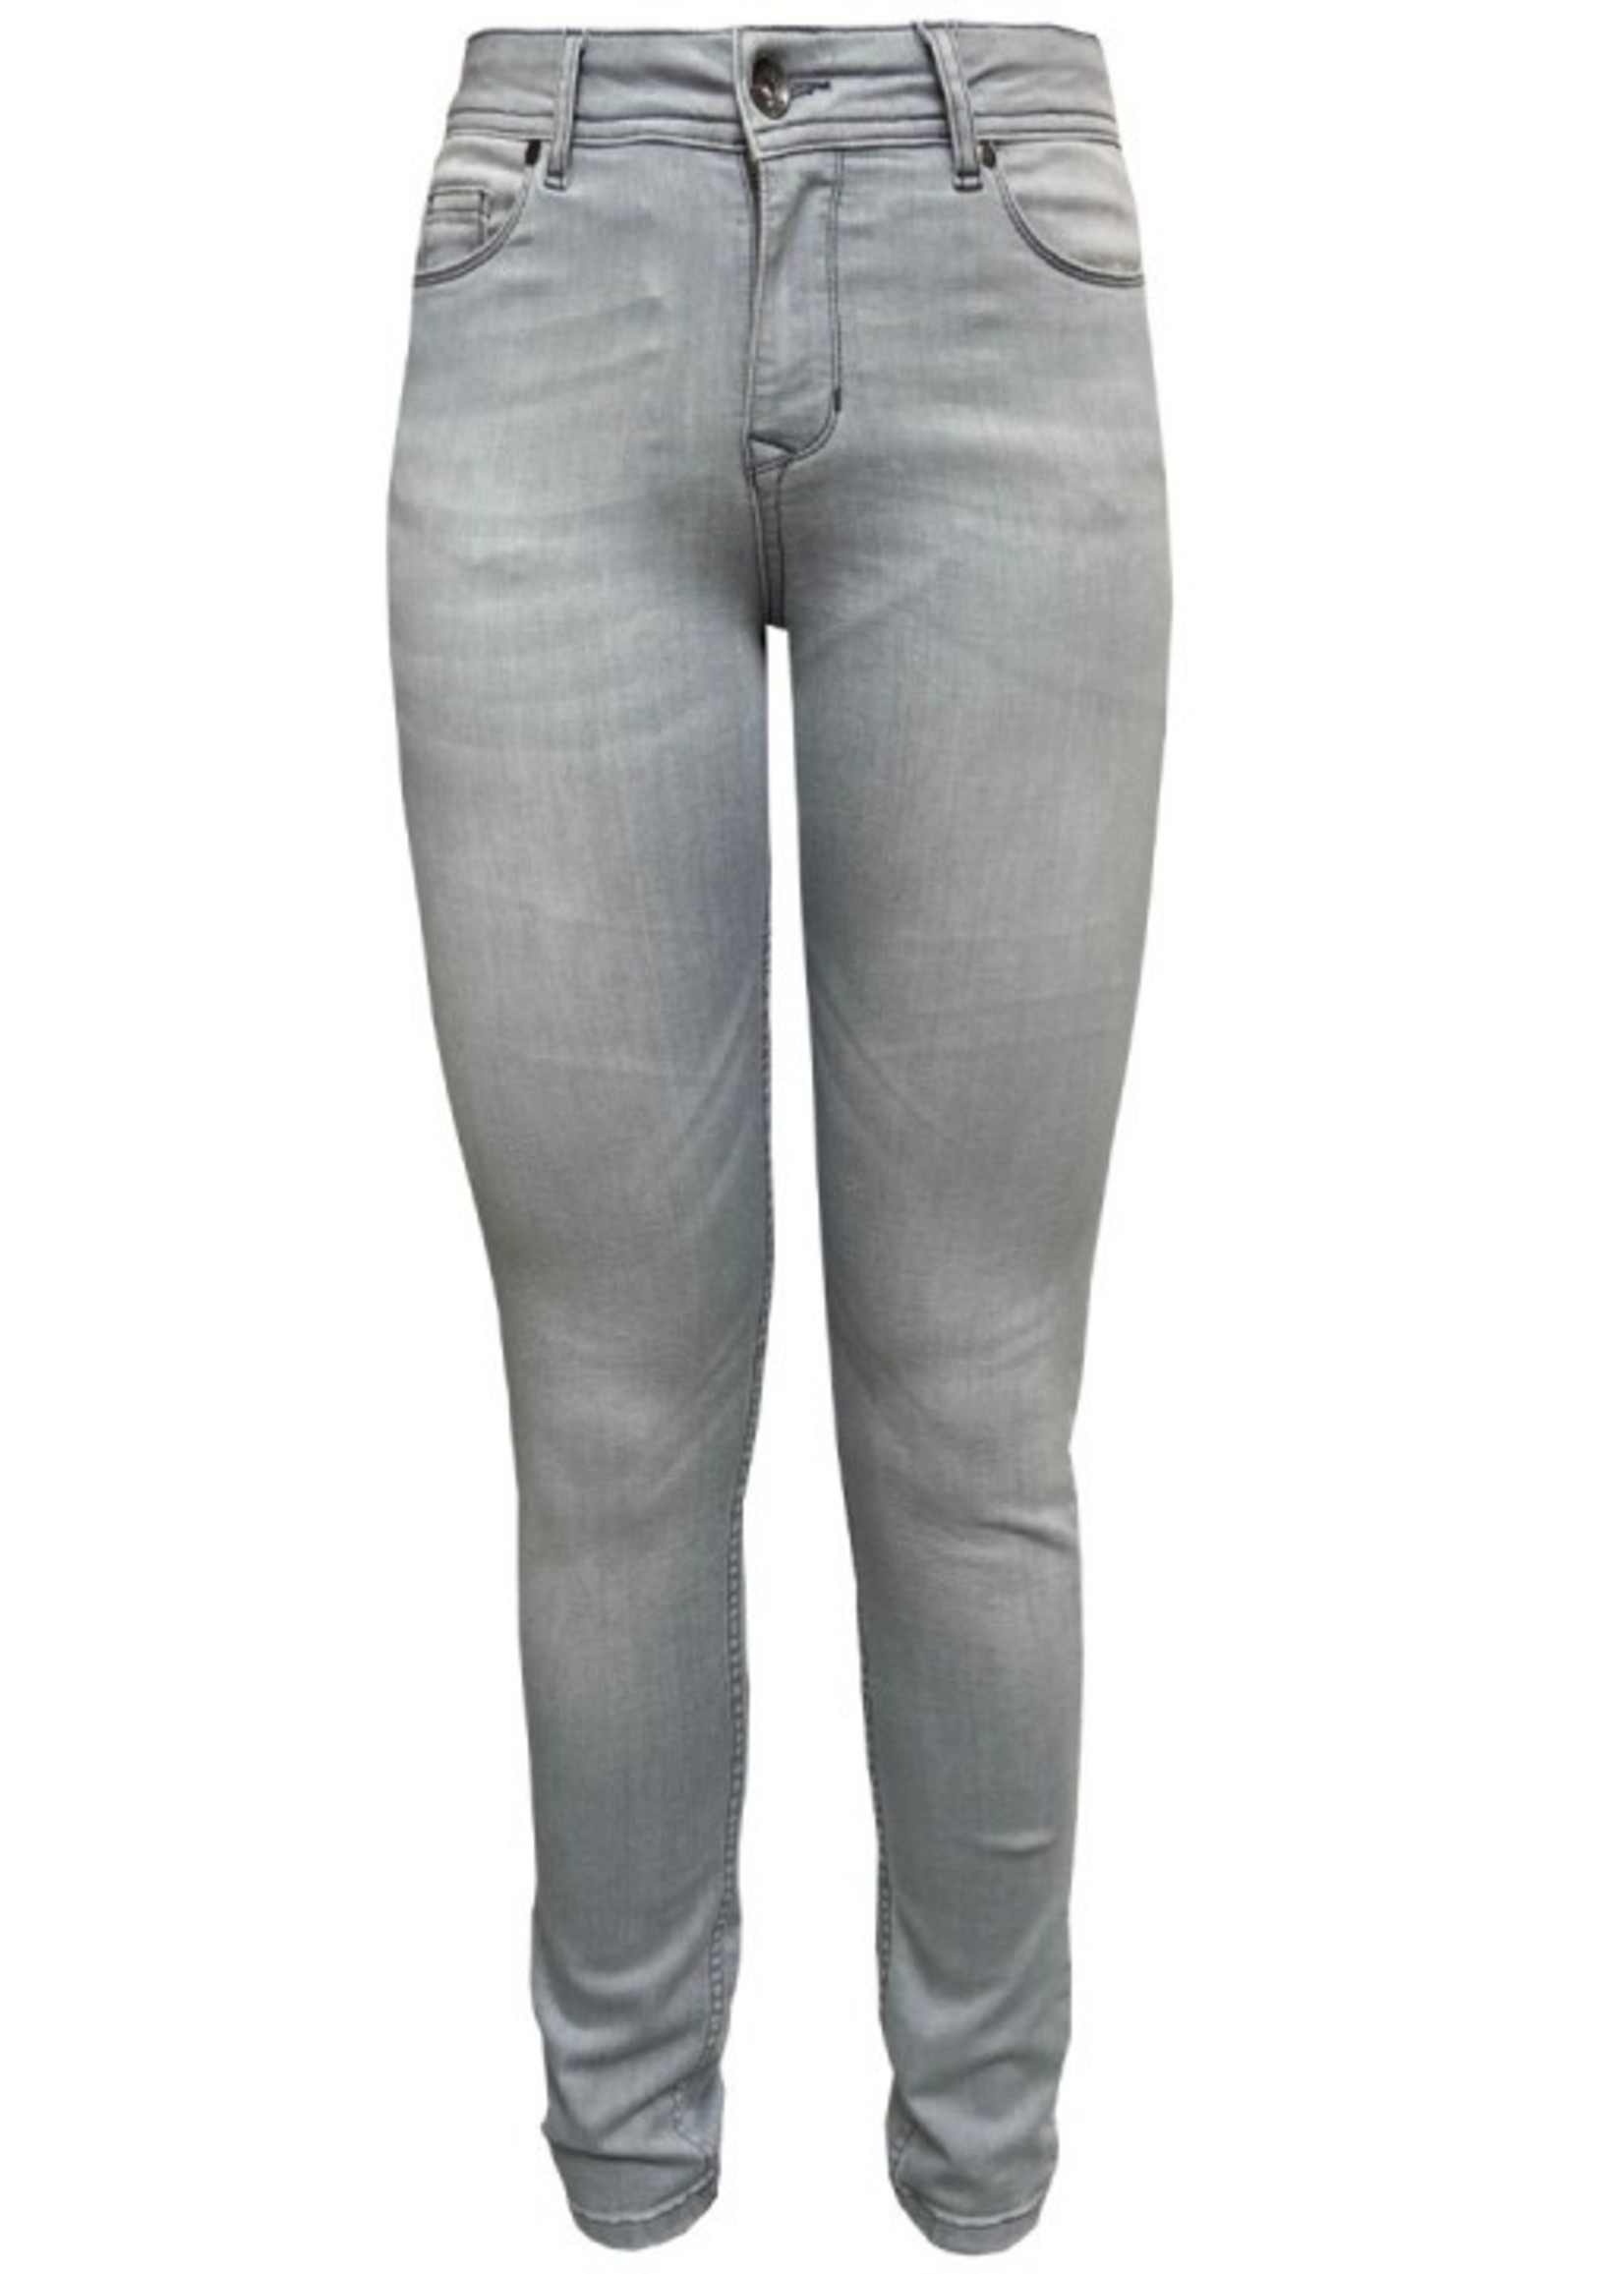 Elvira Collections Elvira Collections Stylish Jeans